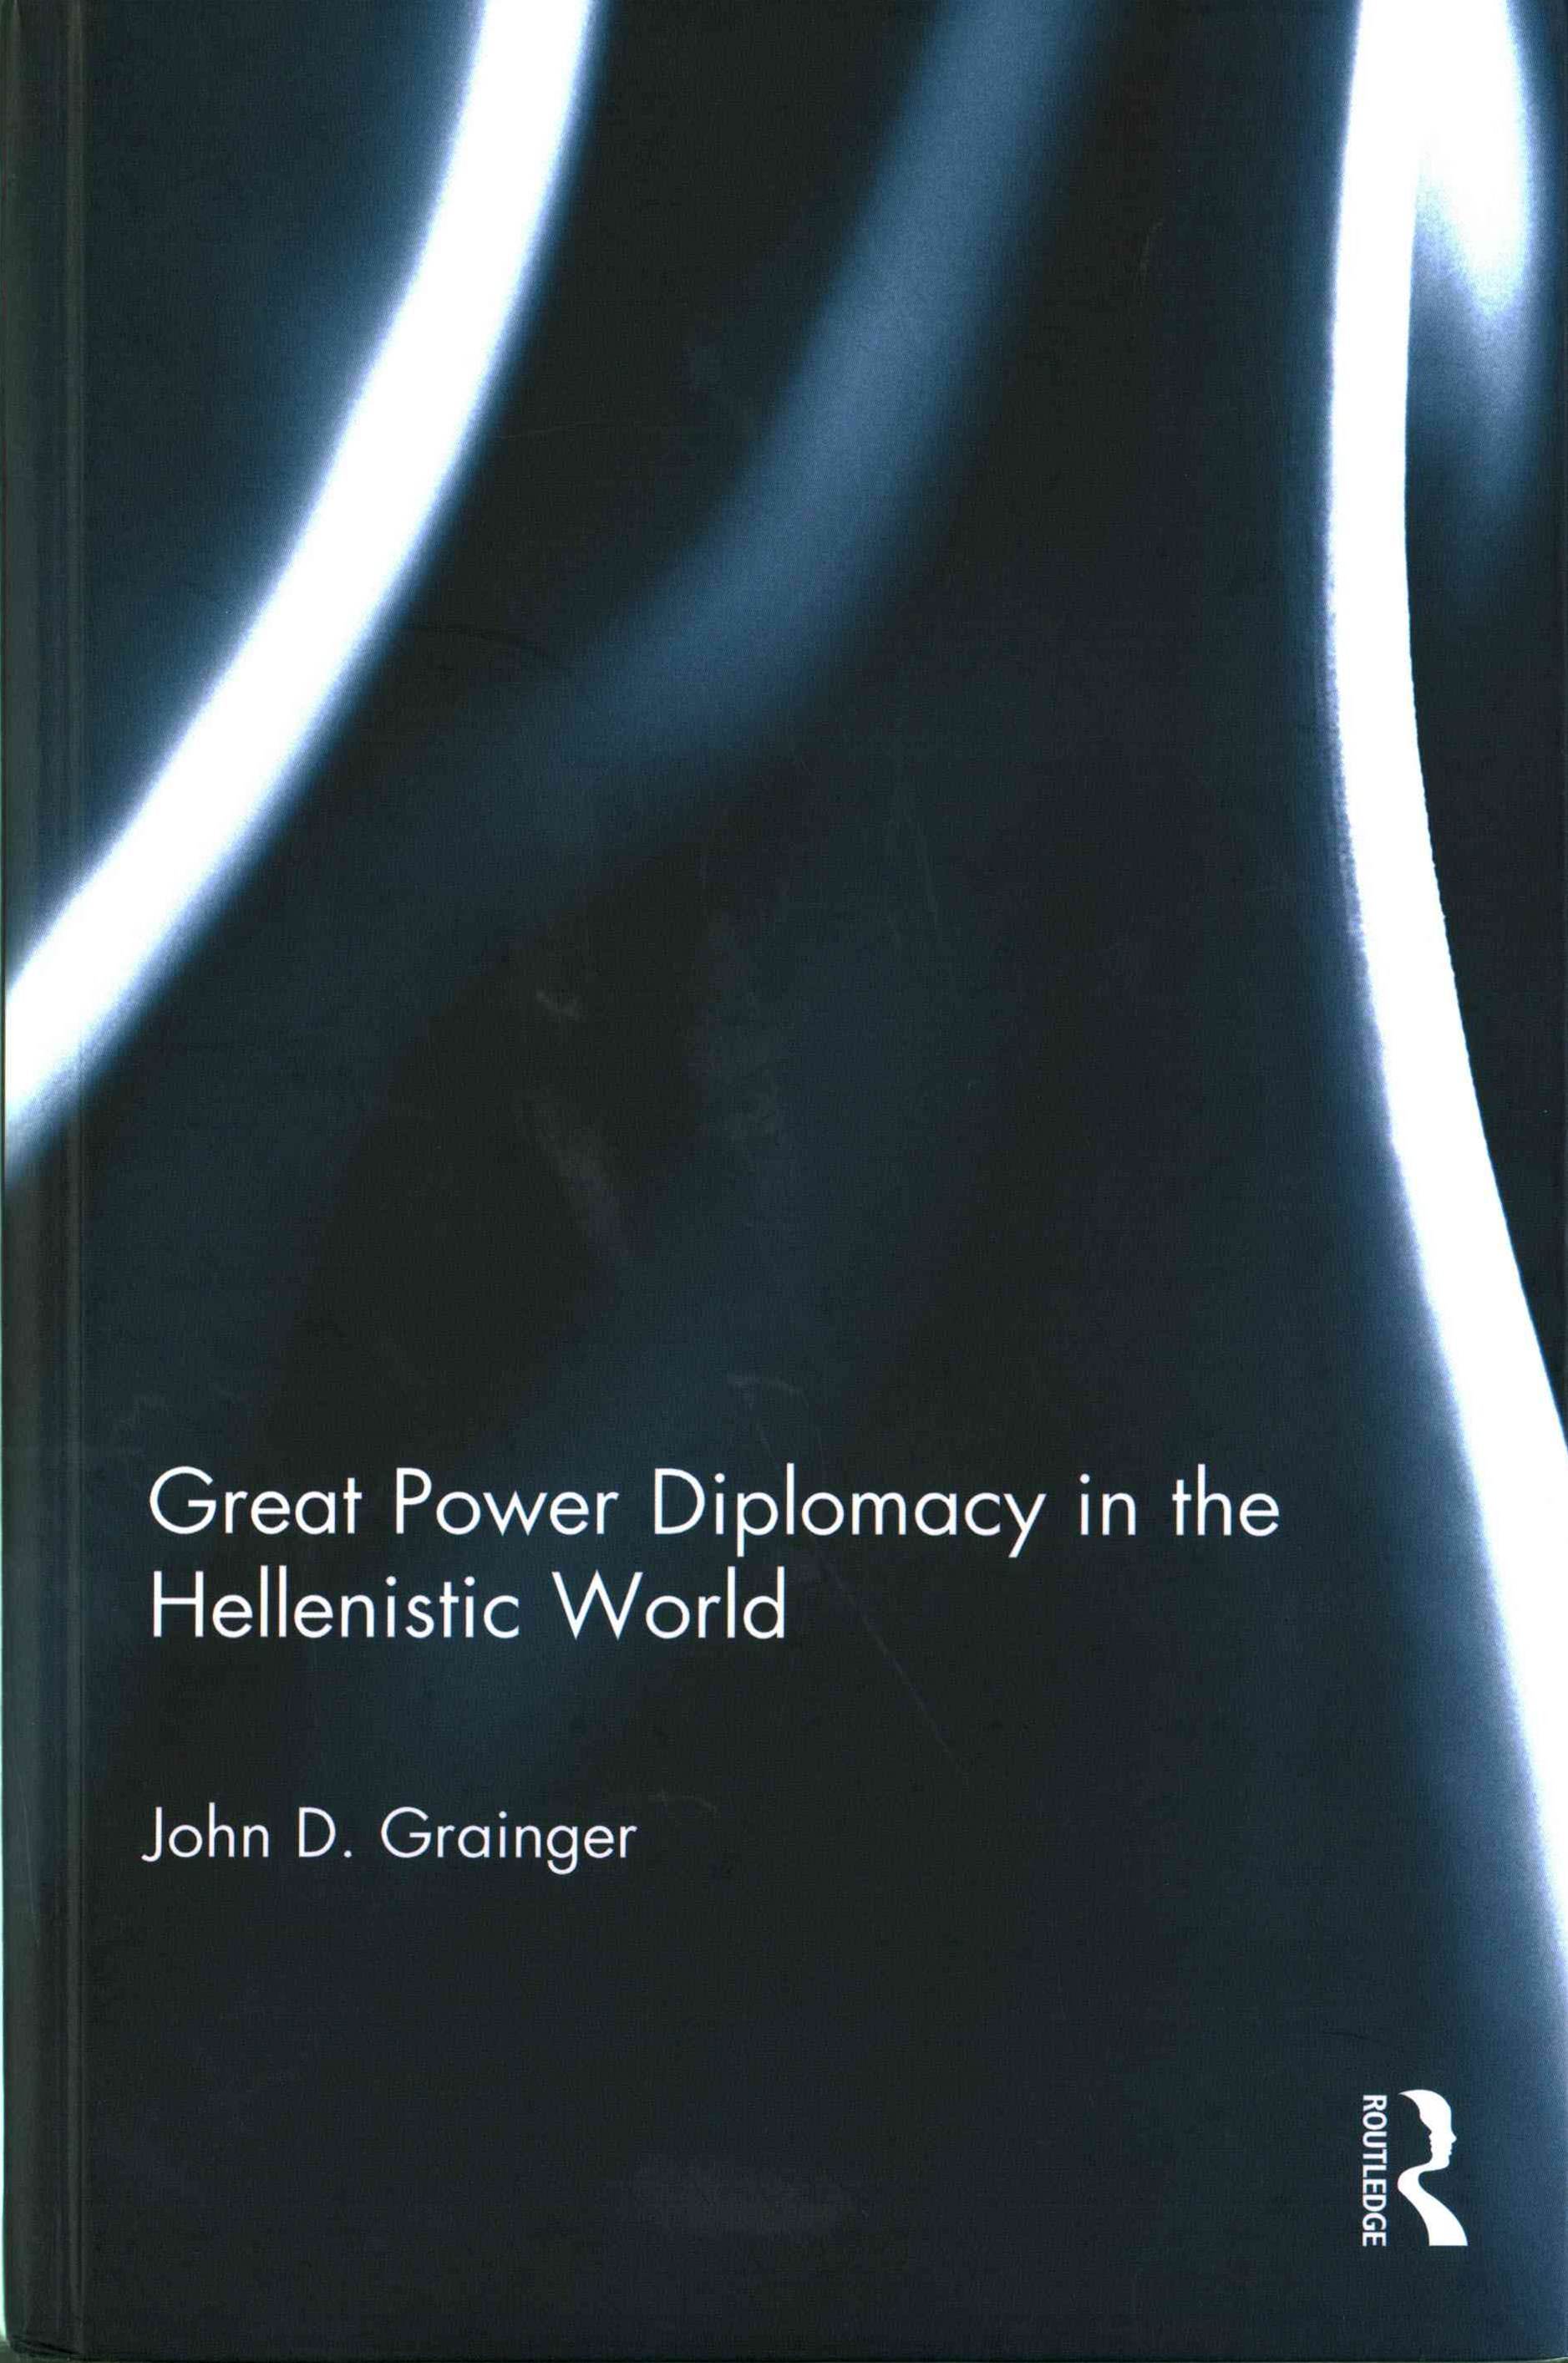 Great Power Diplomacy in the Hellenistic World